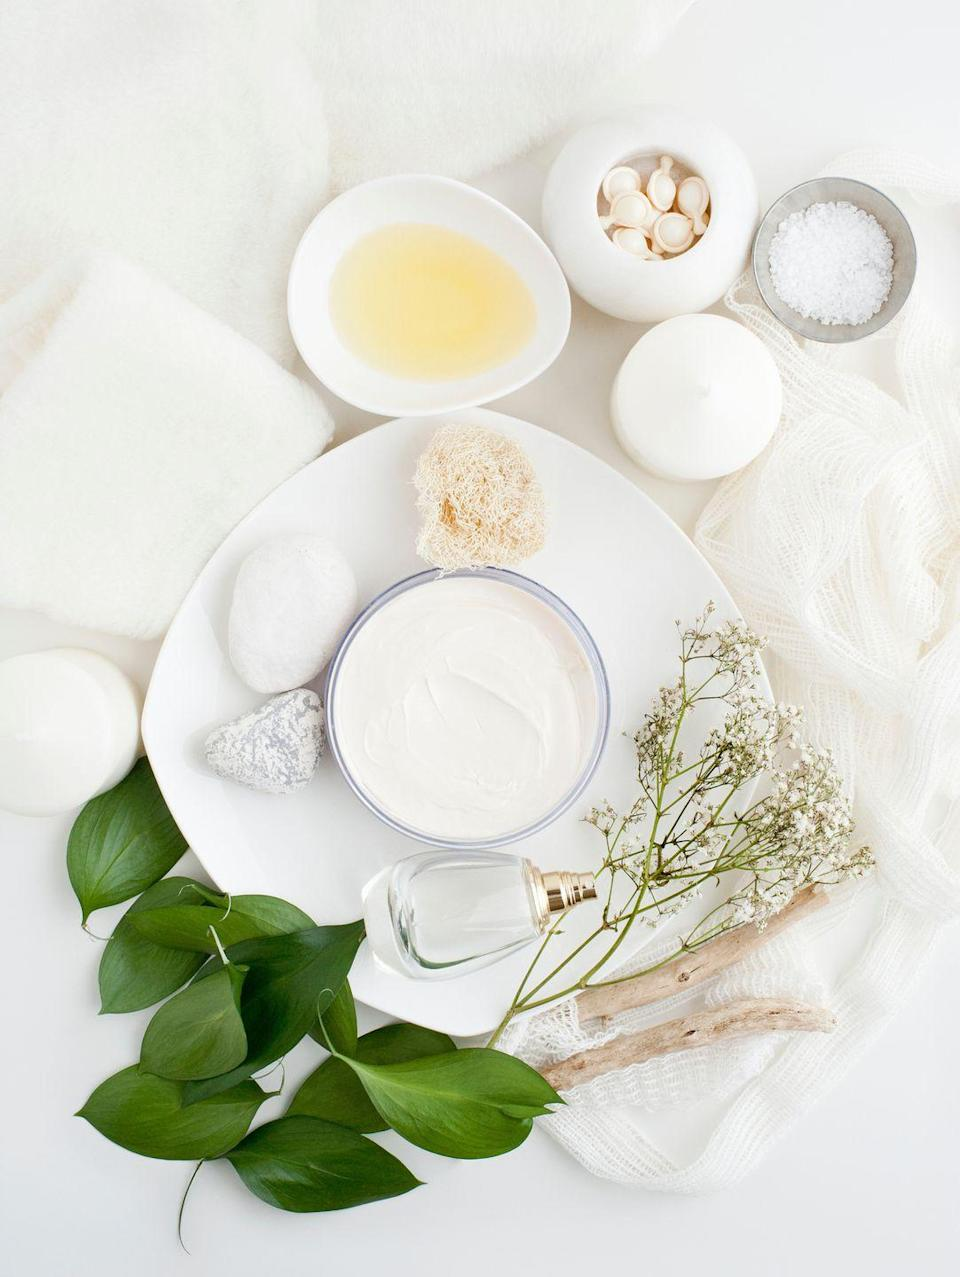 """<p>Make your own face masks, lotions, and more to have an at-home spa night worthy of the real deal. </p><p><a class=""""link rapid-noclick-resp"""" href=""""https://www.amazon.com/Plazuria-Facemask-Spatula-Silicone-Premium/dp/B07Q568NRF/?tag=syn-yahoo-20&ascsubtag=%5Bartid%7C10050.g.30445302%5Bsrc%7Cyahoo-us"""" rel=""""nofollow noopener"""" target=""""_blank"""" data-ylk=""""slk:SHOP FACE MASK KITS"""">SHOP FACE MASK KITS</a></p>"""